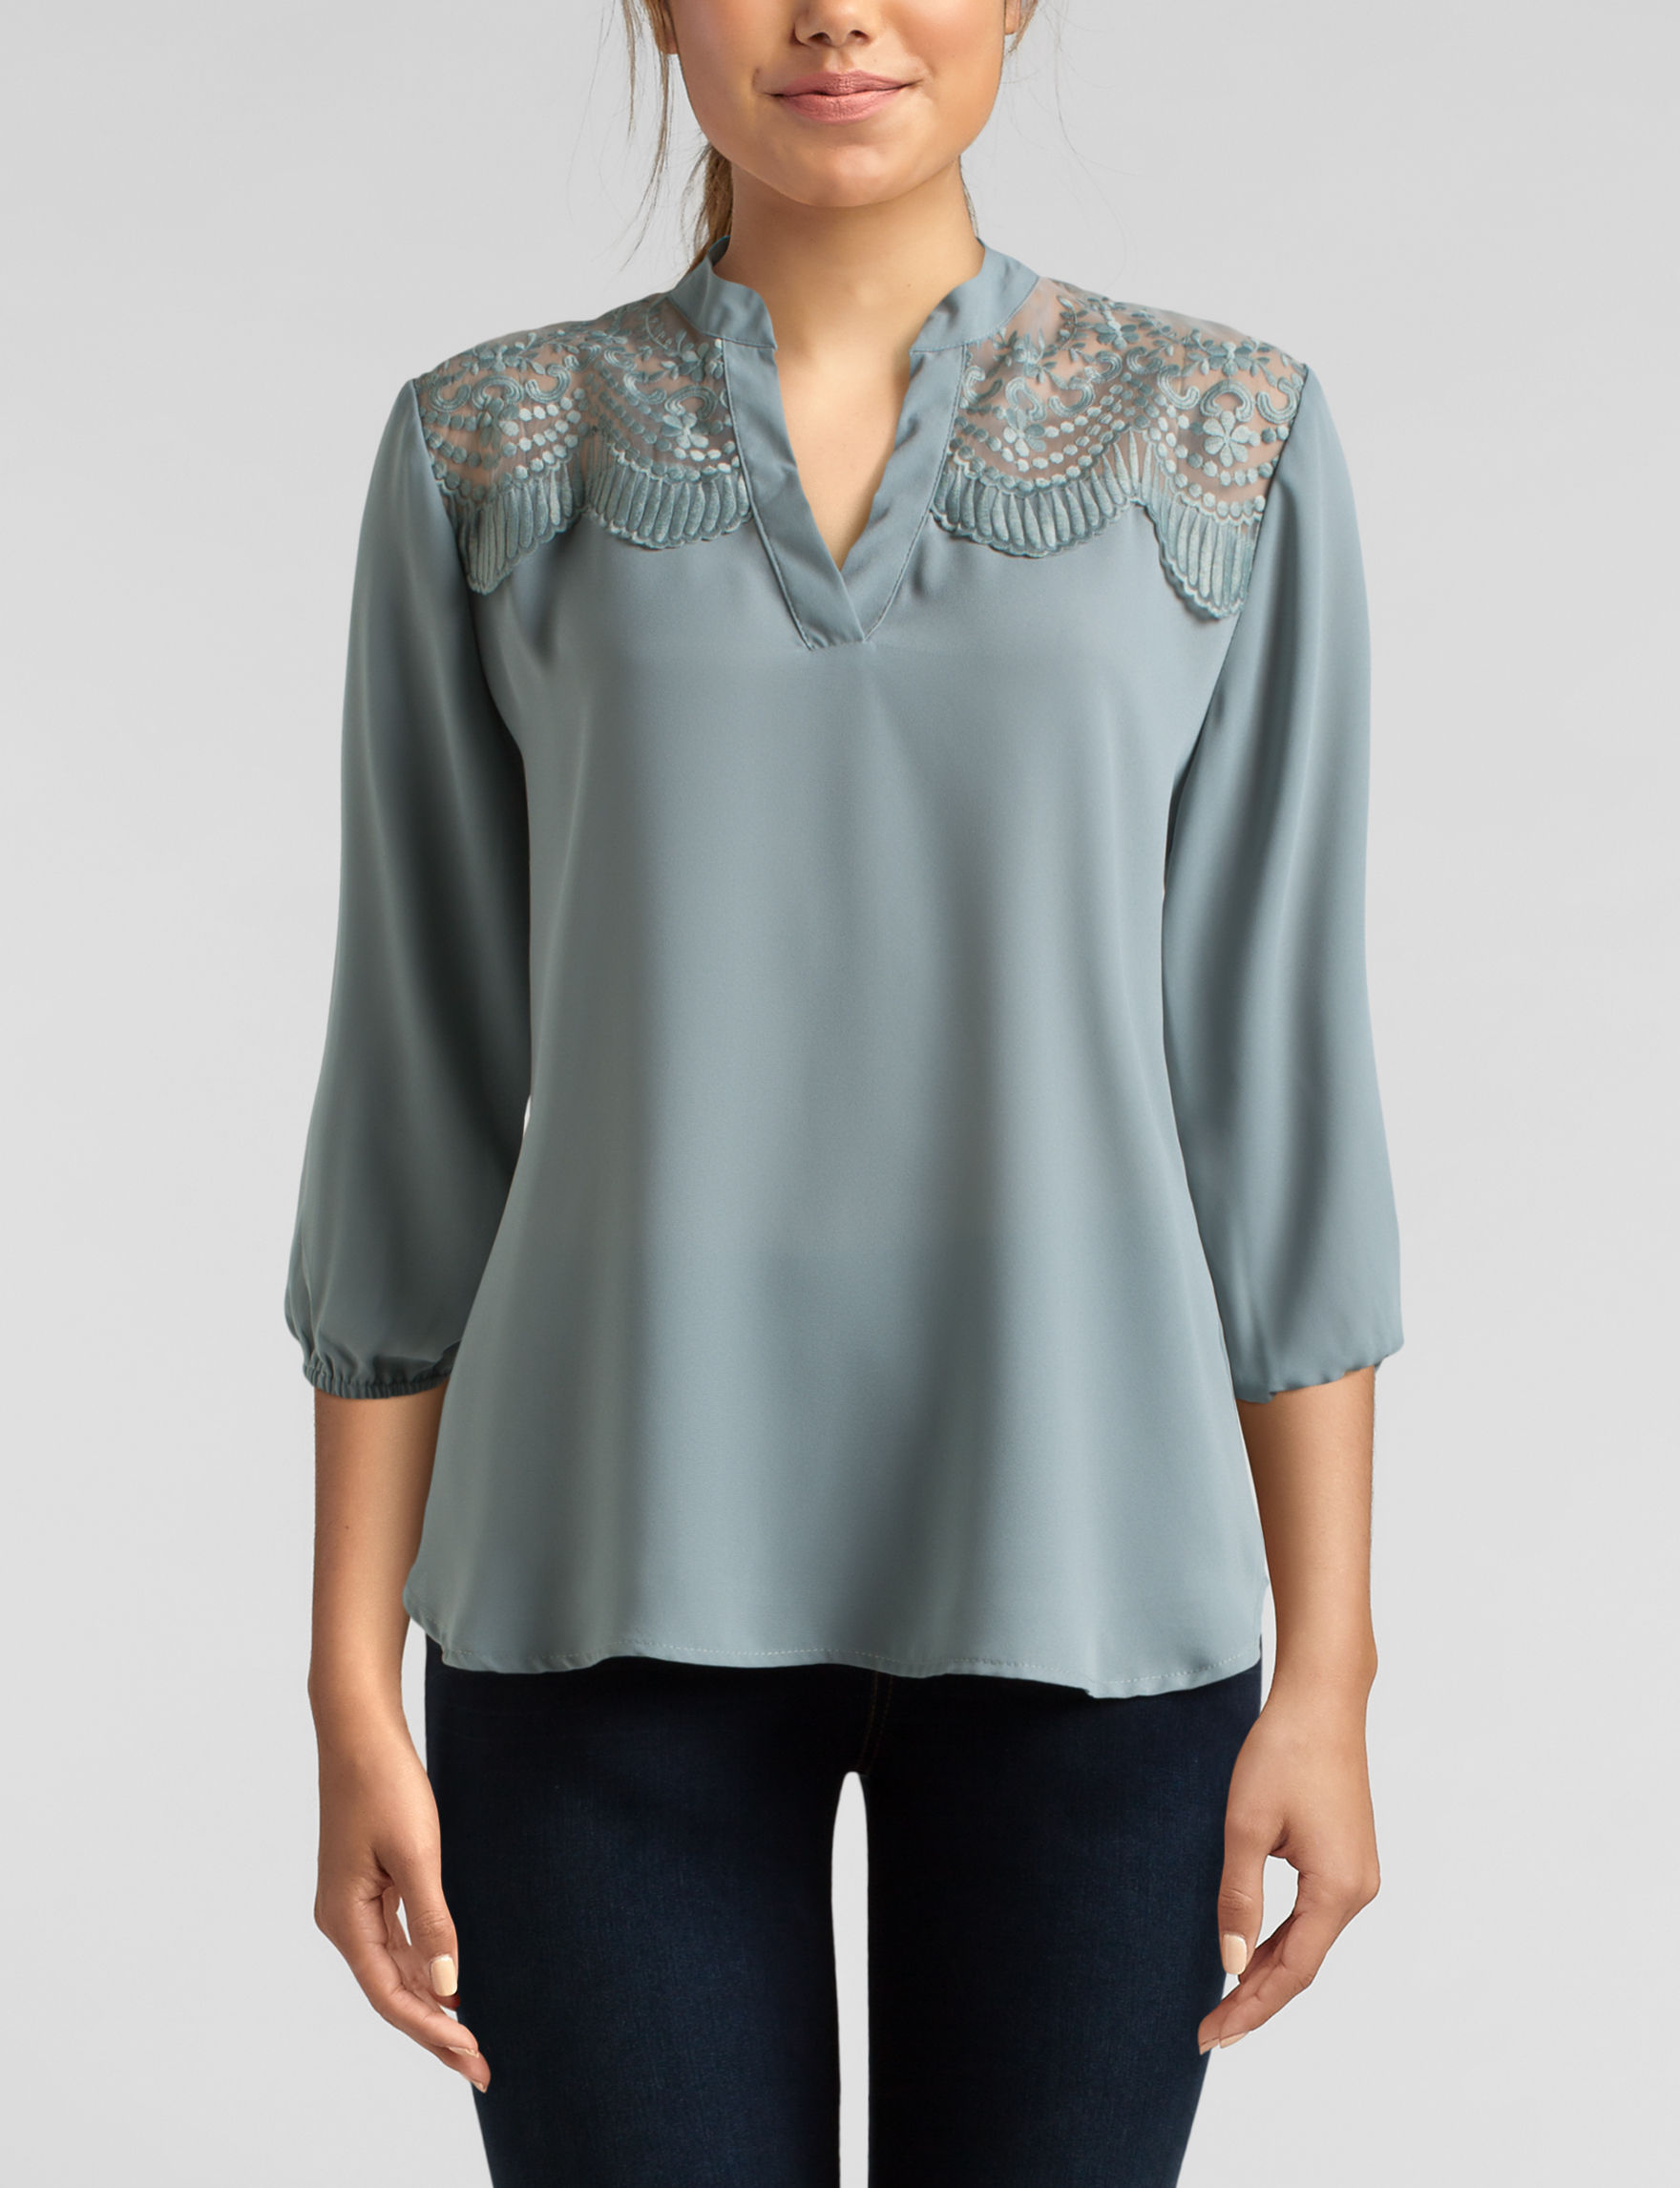 Wishful Park Sage Shirts & Blouses